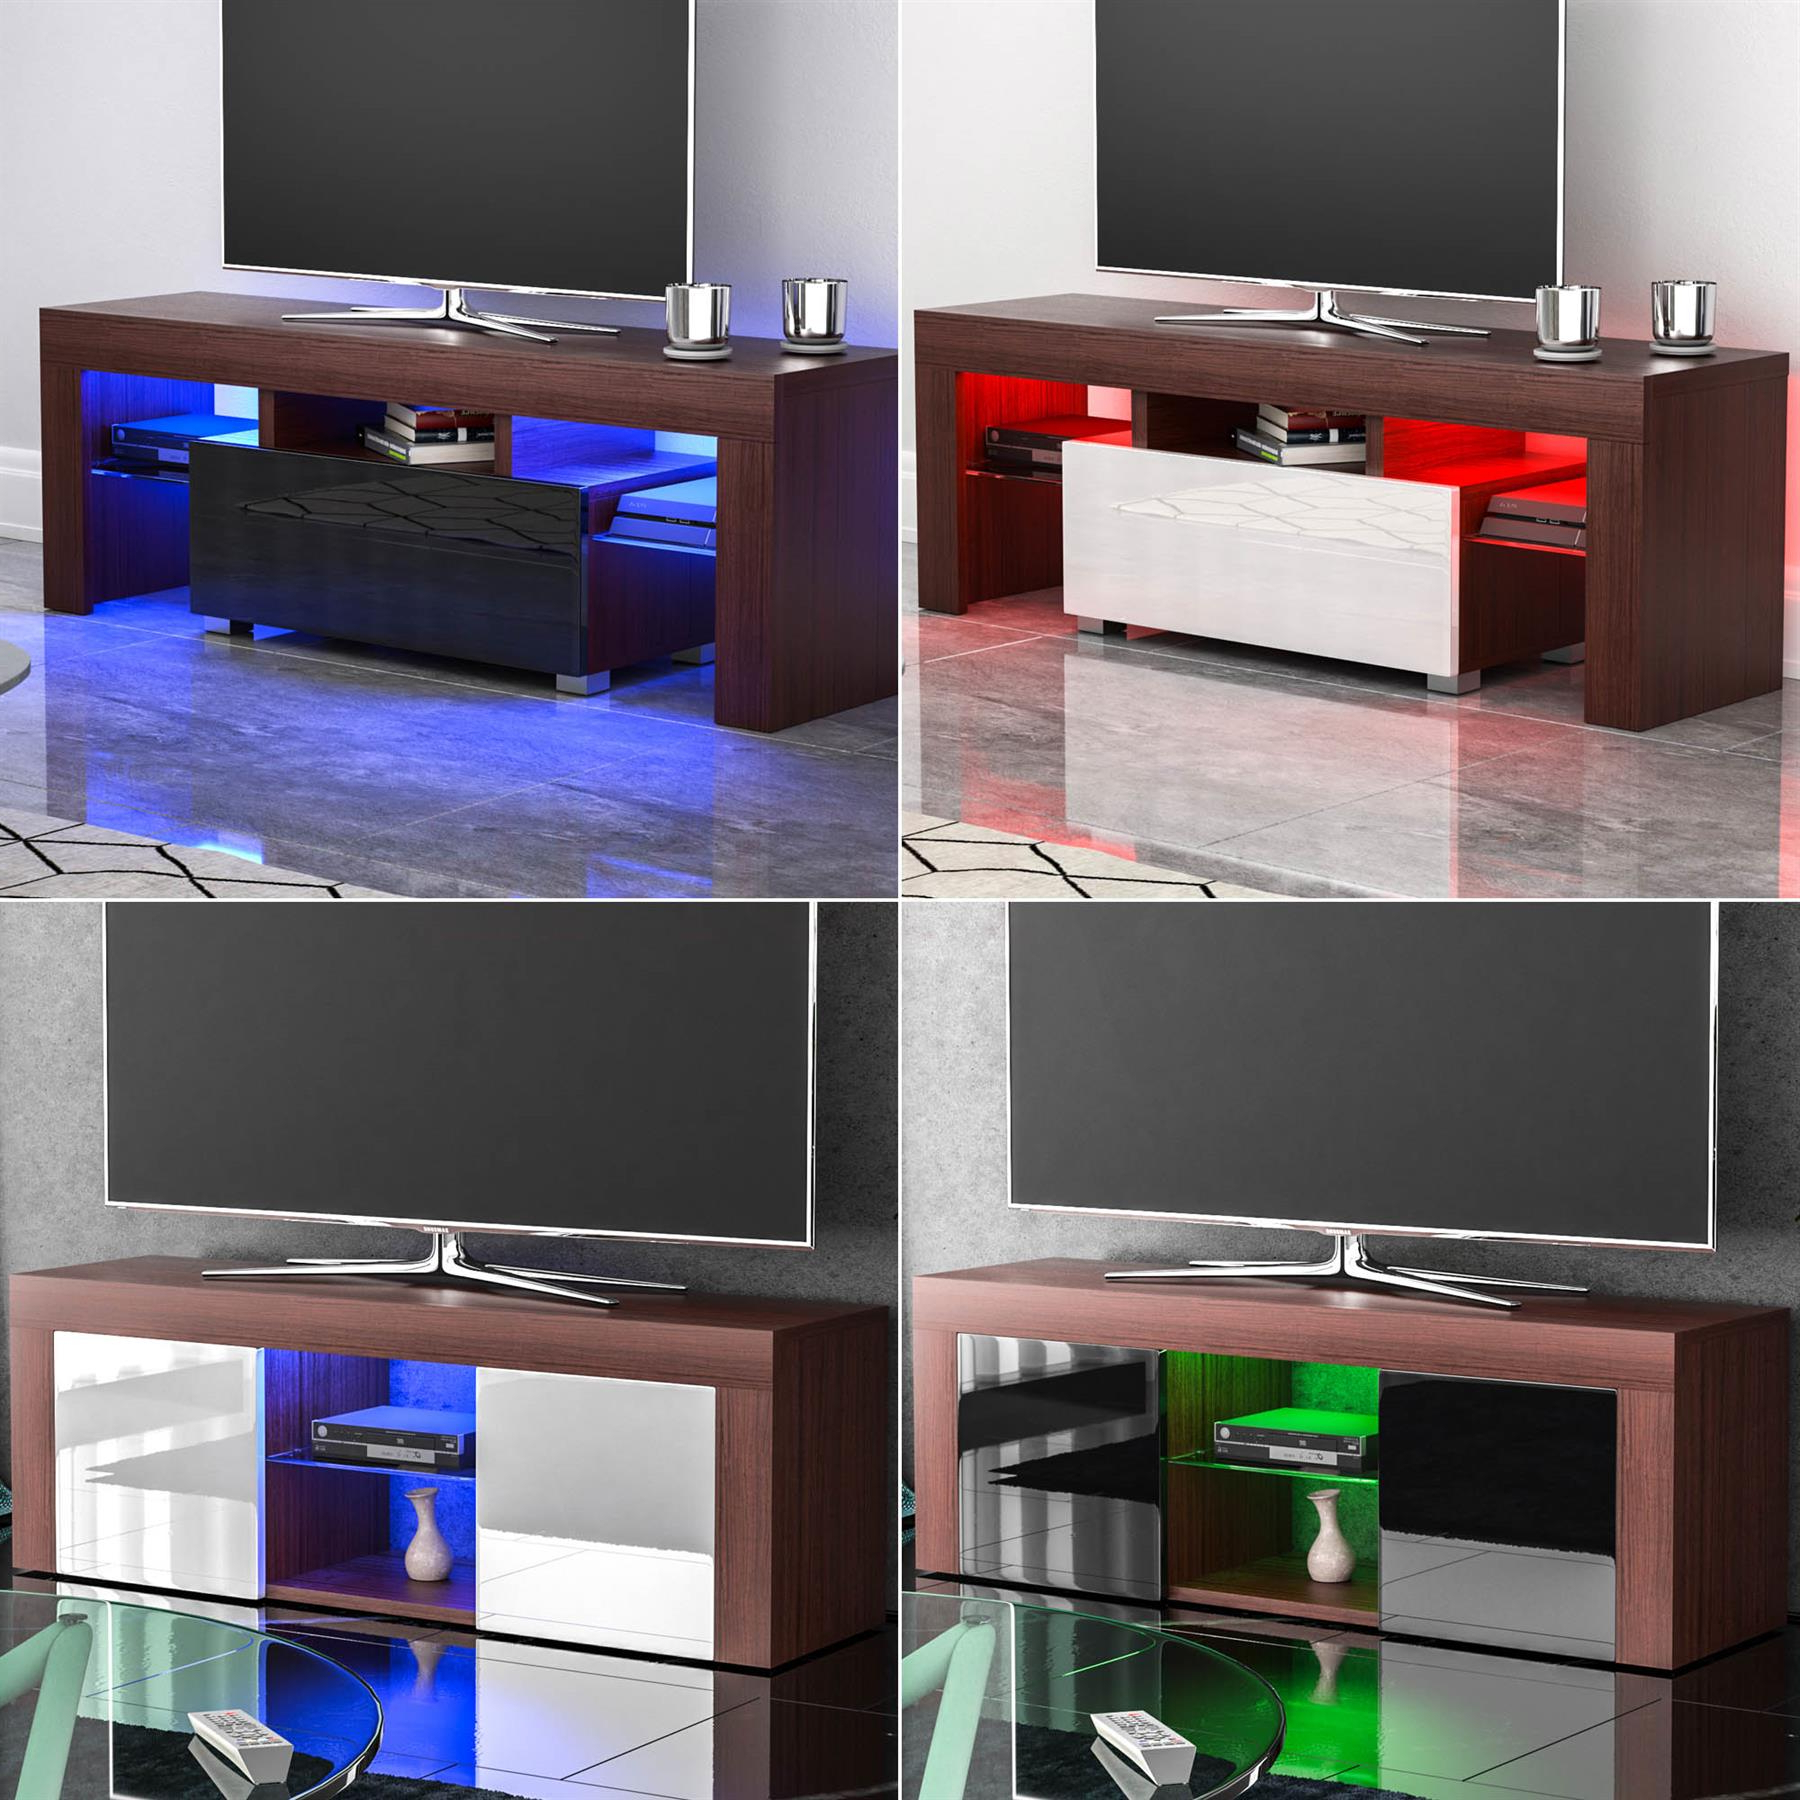 Led Tv Stand Cabinet Unit Drawer Gloss Matte Mdf Throughout Solo 200 Modern Led Tv Stands (View 8 of 20)